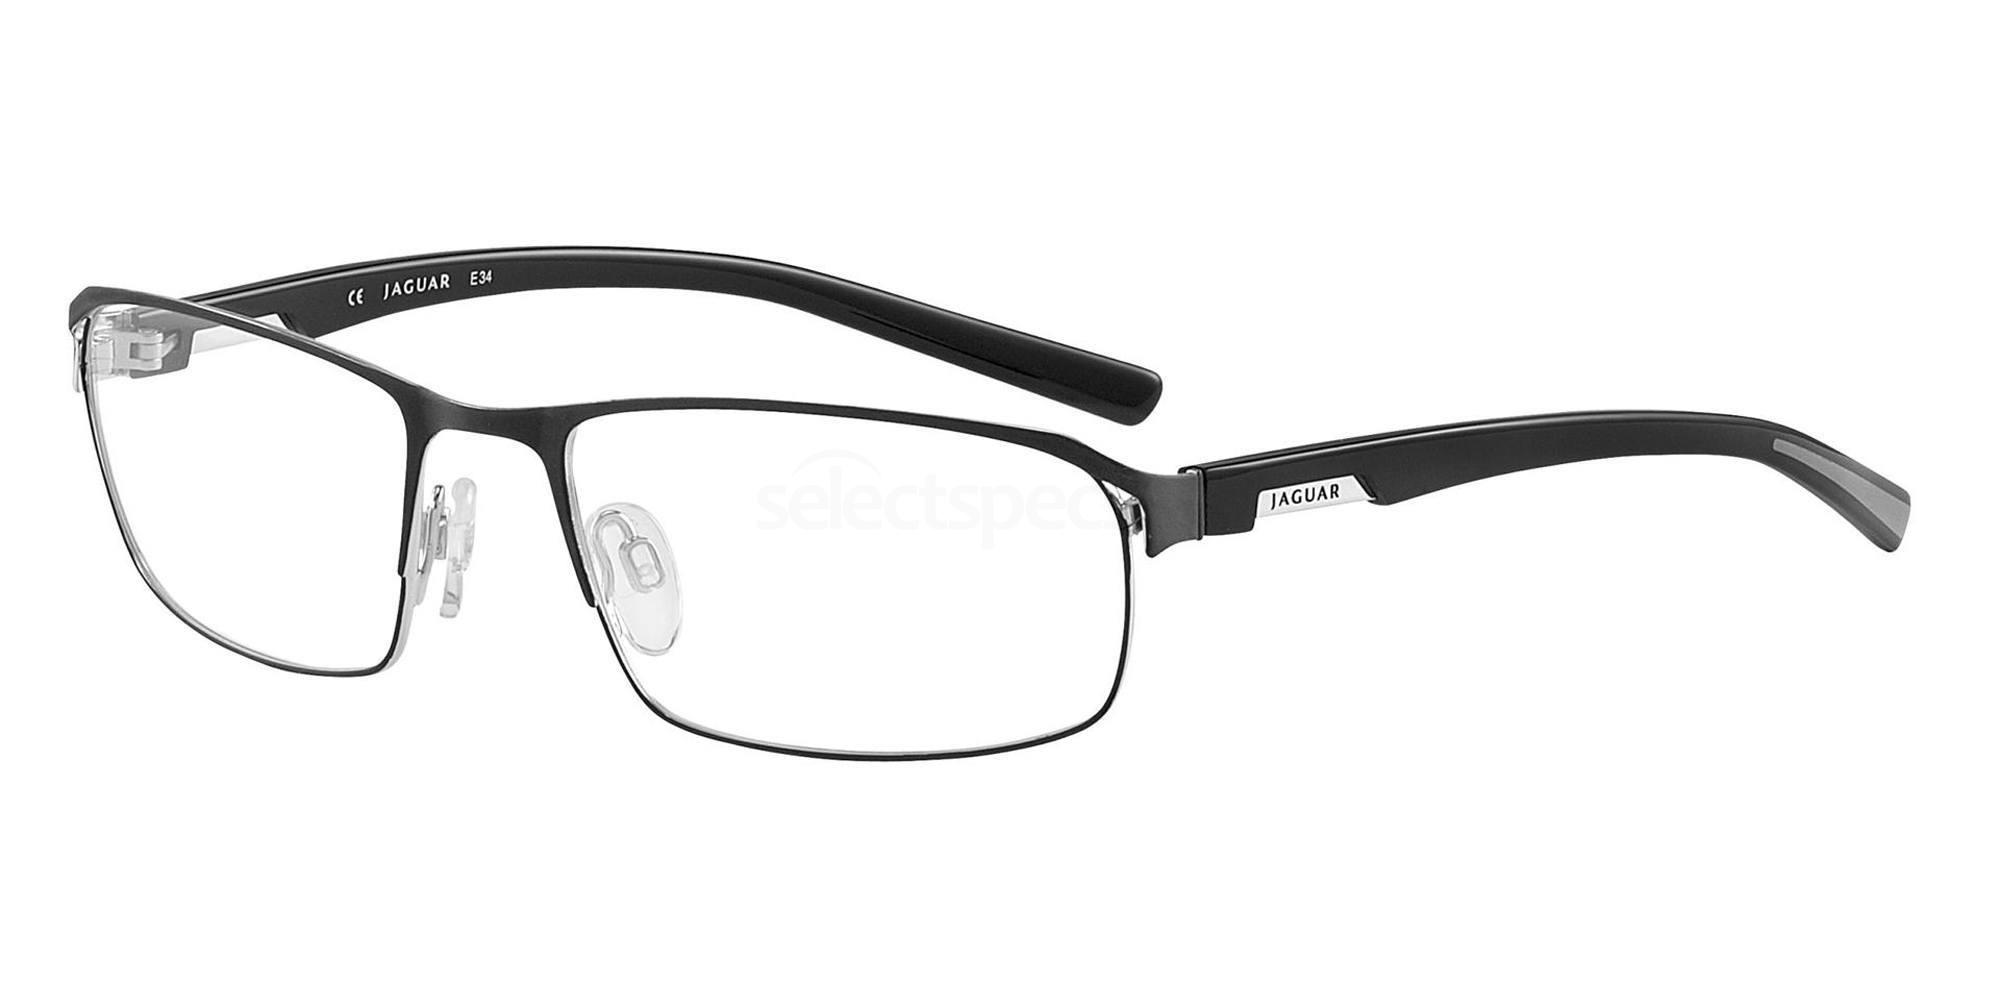 610 33555 Glasses, JAGUAR Eyewear